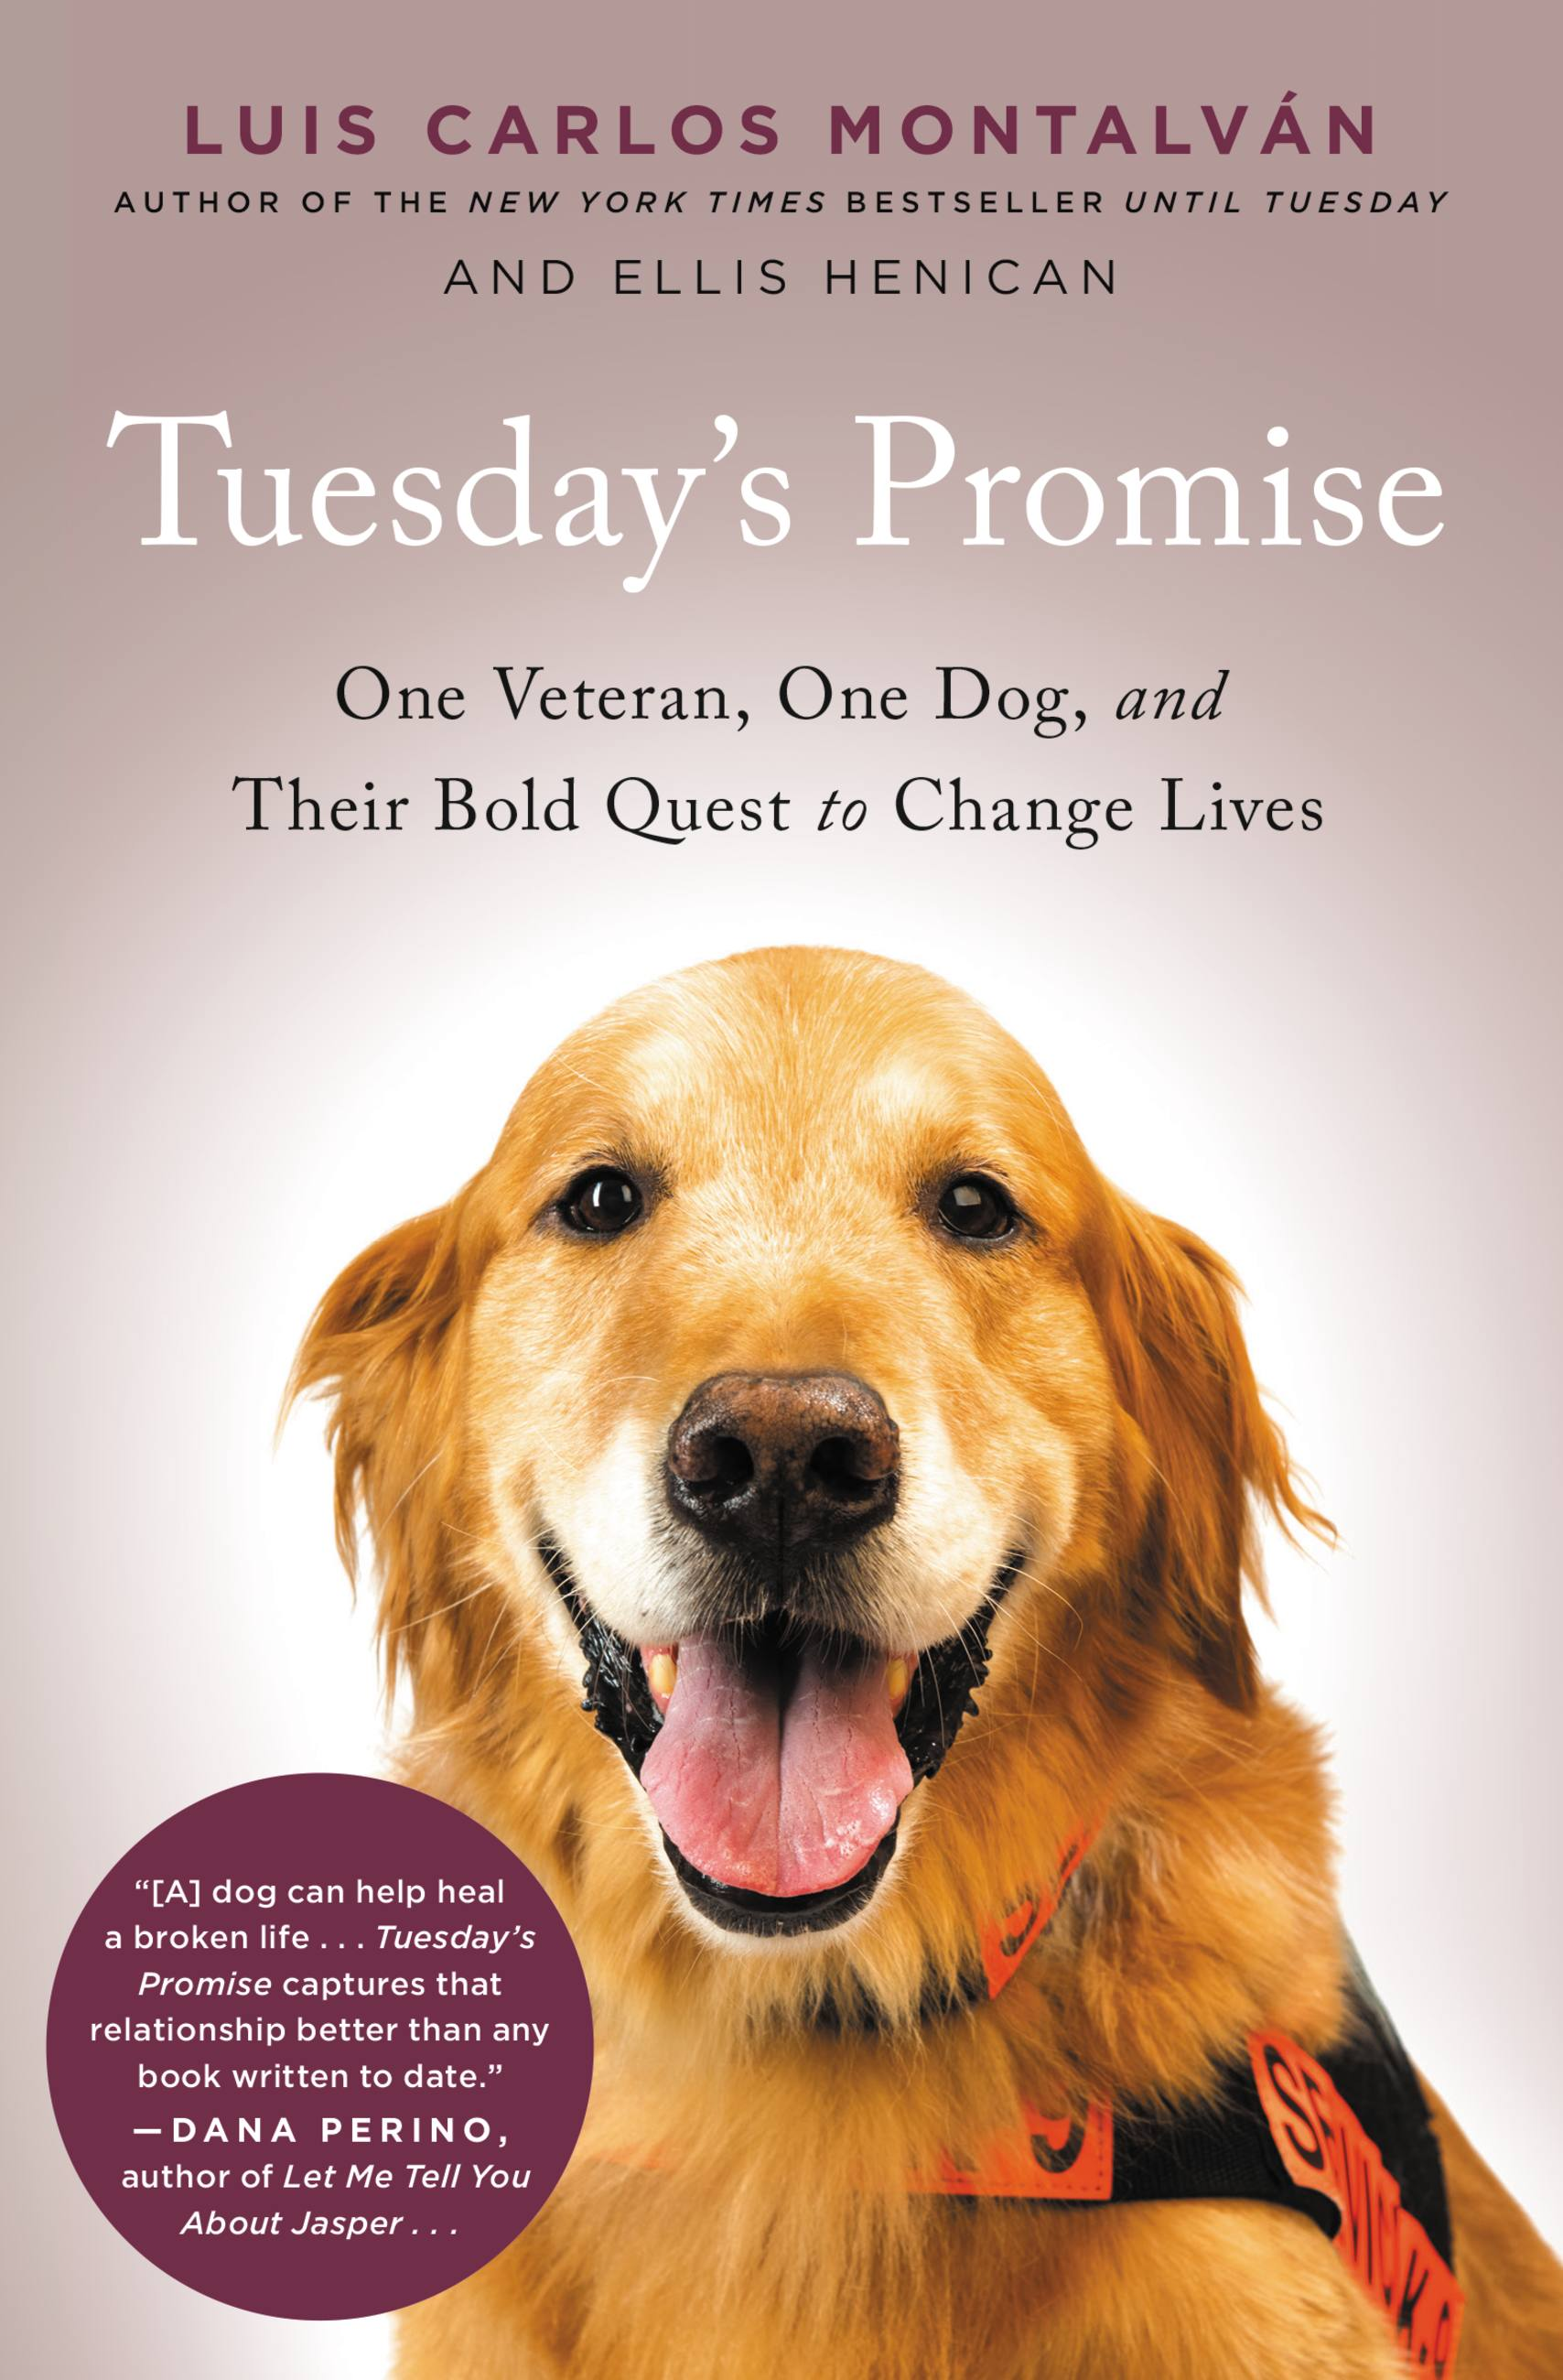 Tuesday's Promise One Veteran, One Dog, and Their Bold Quest to Change Lives